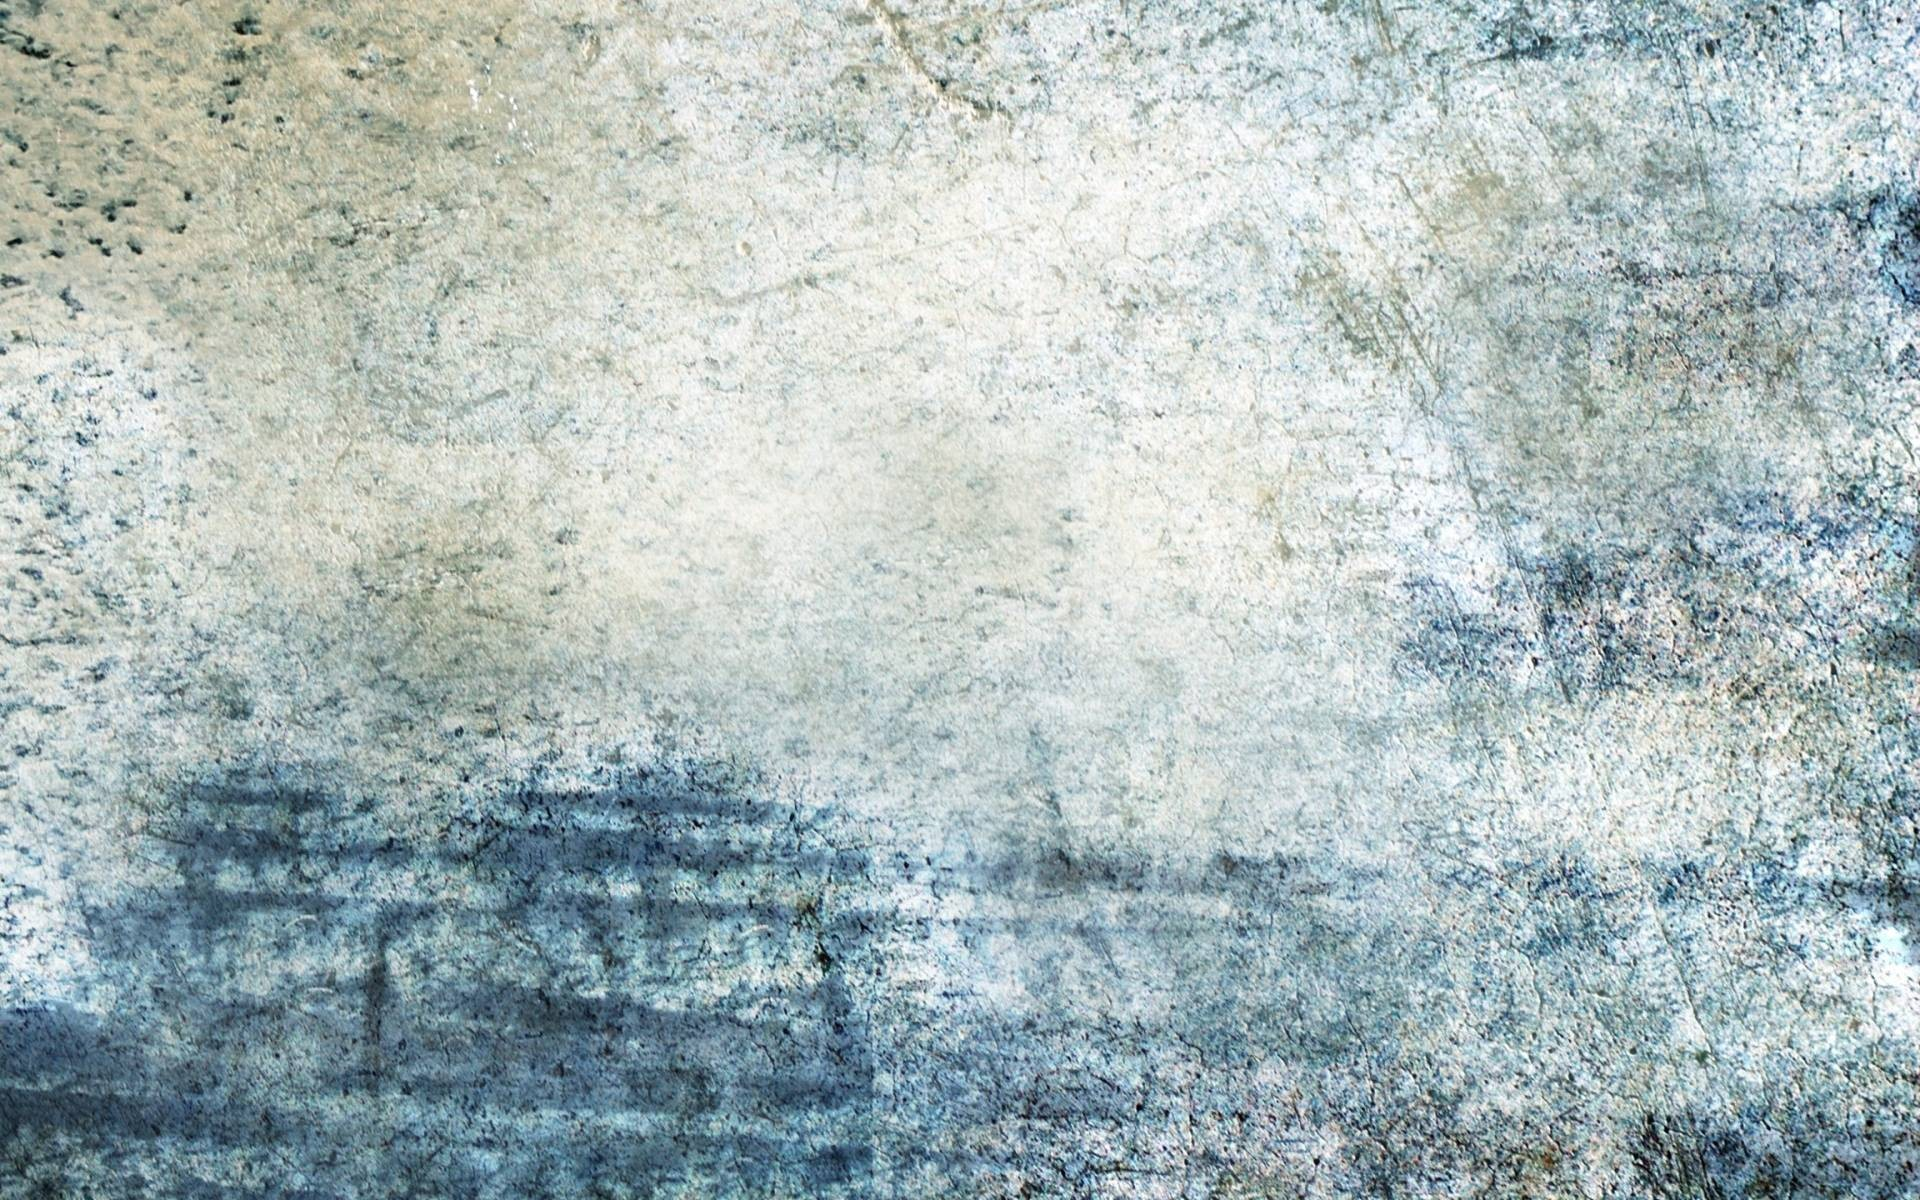 pale grunge background tumblr 183�� download free amazing hd